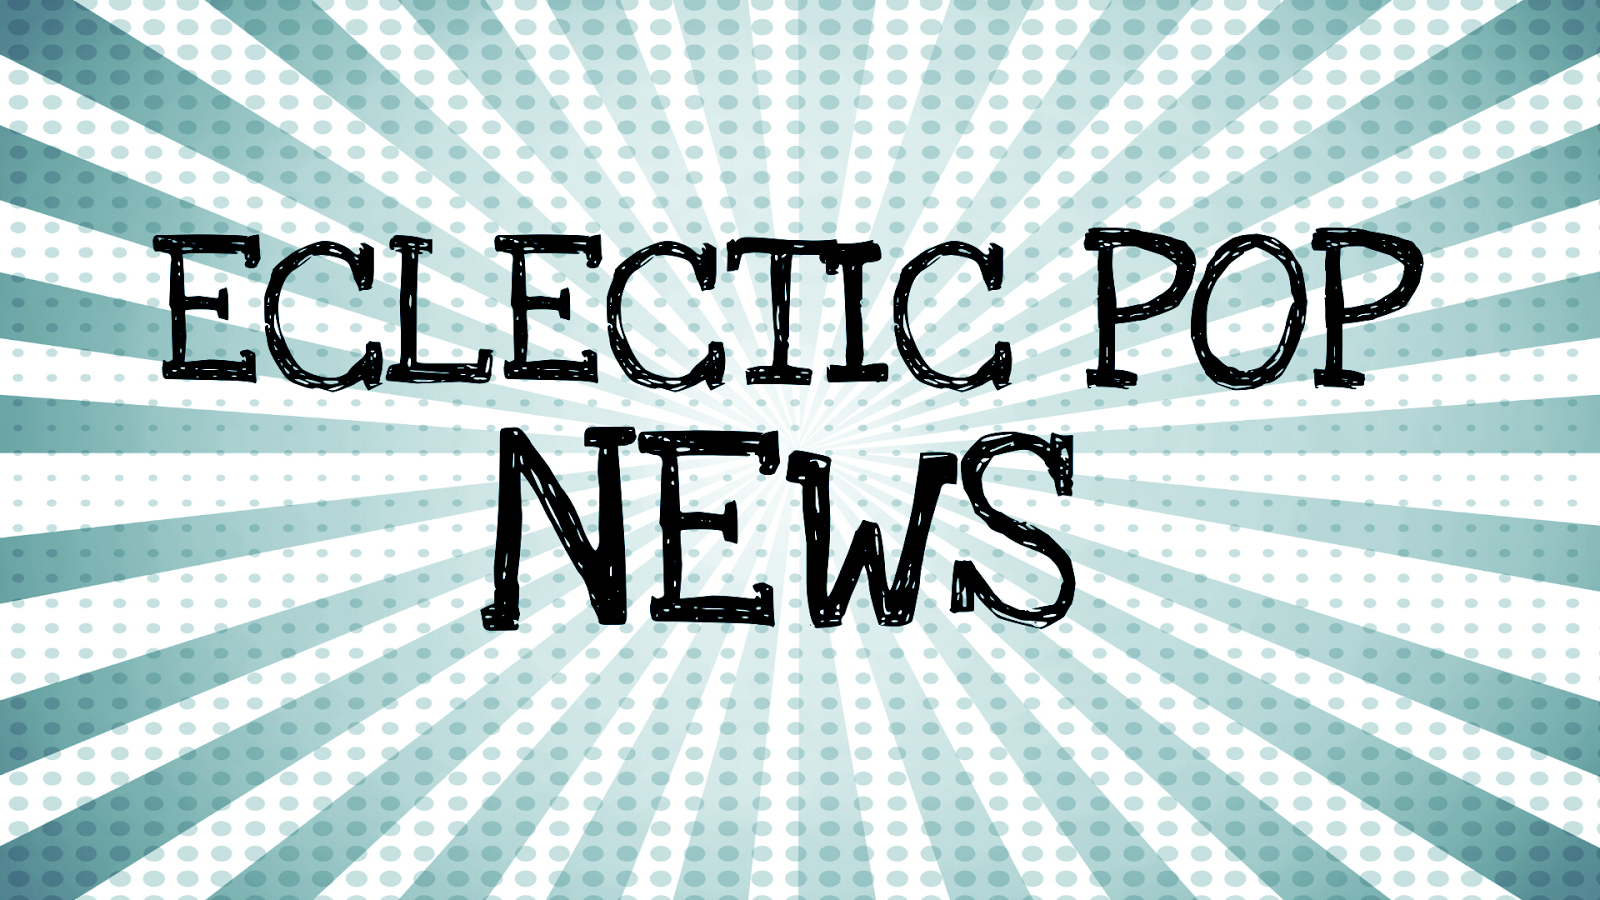 Eclectic Pop News: Guesting on The Dr  Bones Show Podcast - Eclectic Pop